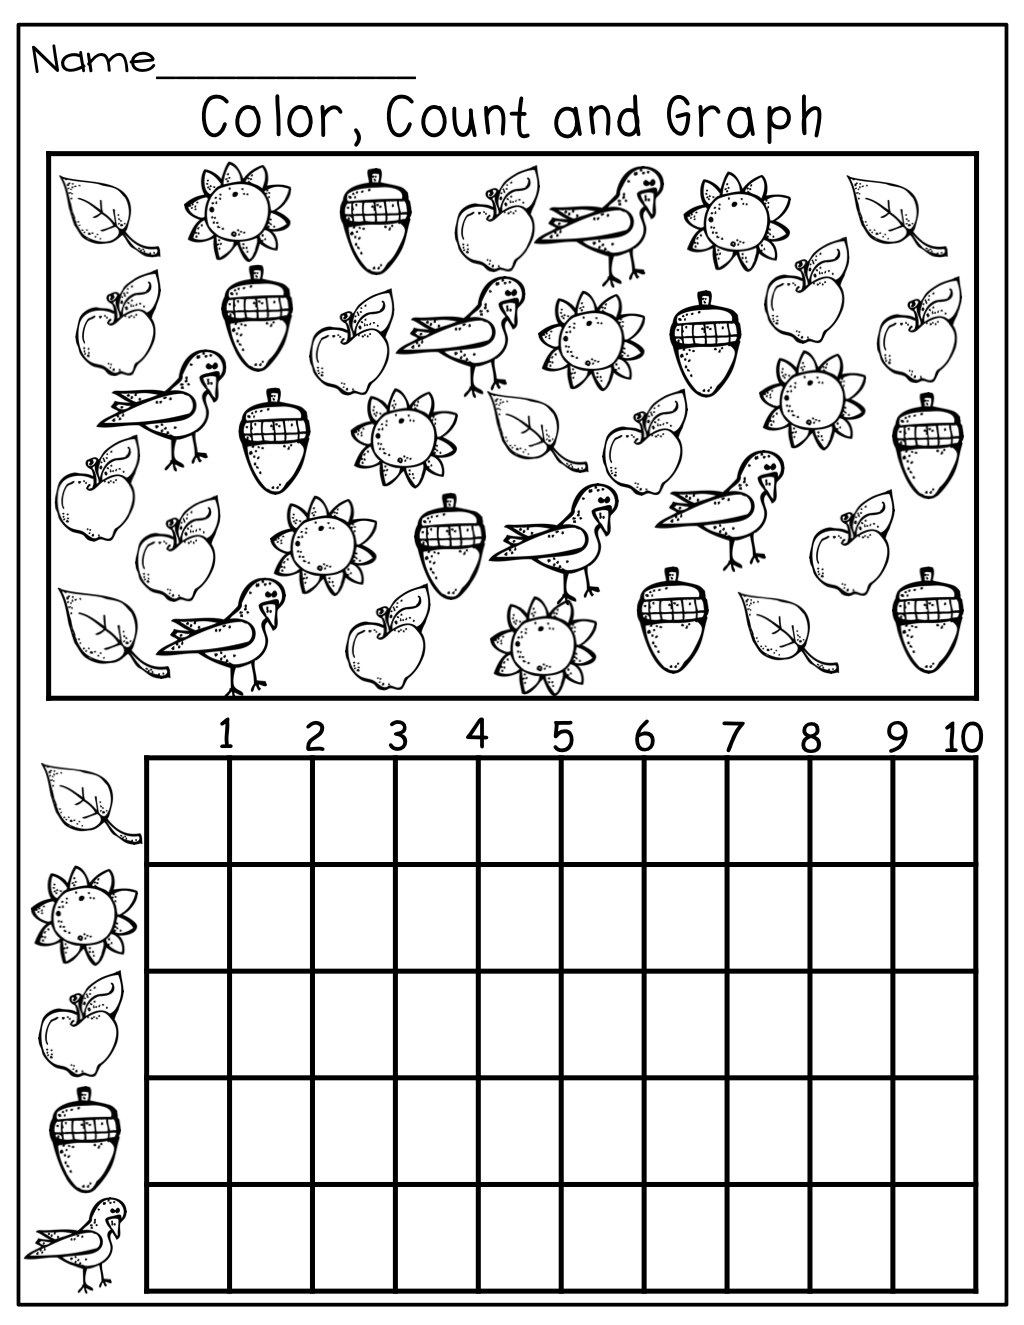 Fall Graphing Might Be Easier For Kids If The Shapes Were